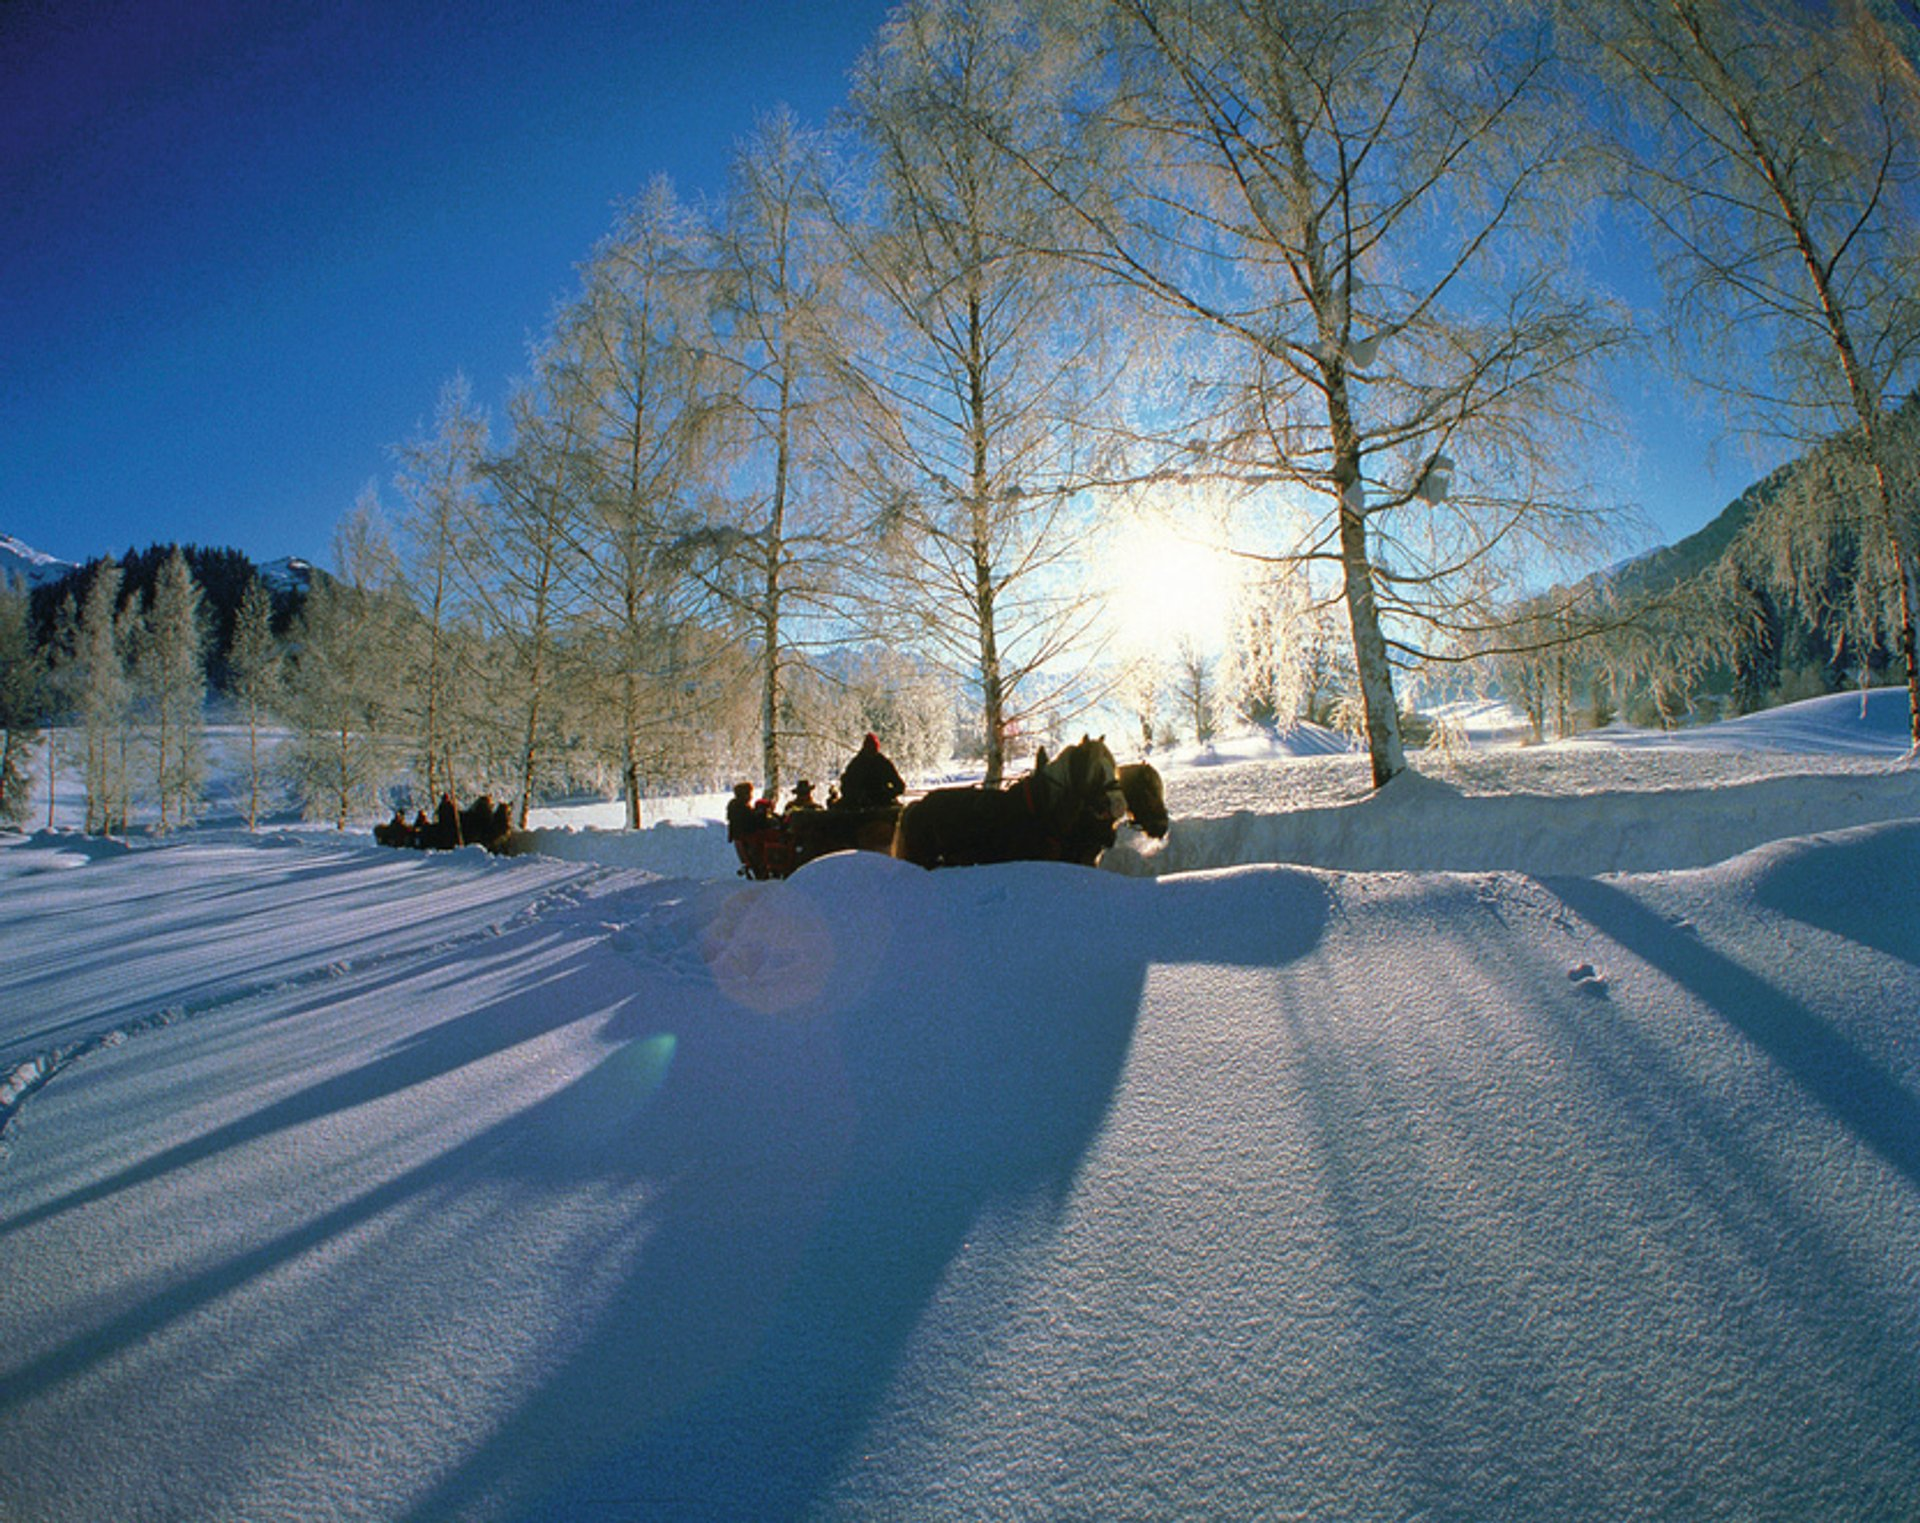 Winter Horse and Sleigh Ride in Austria 2020 - Best Time